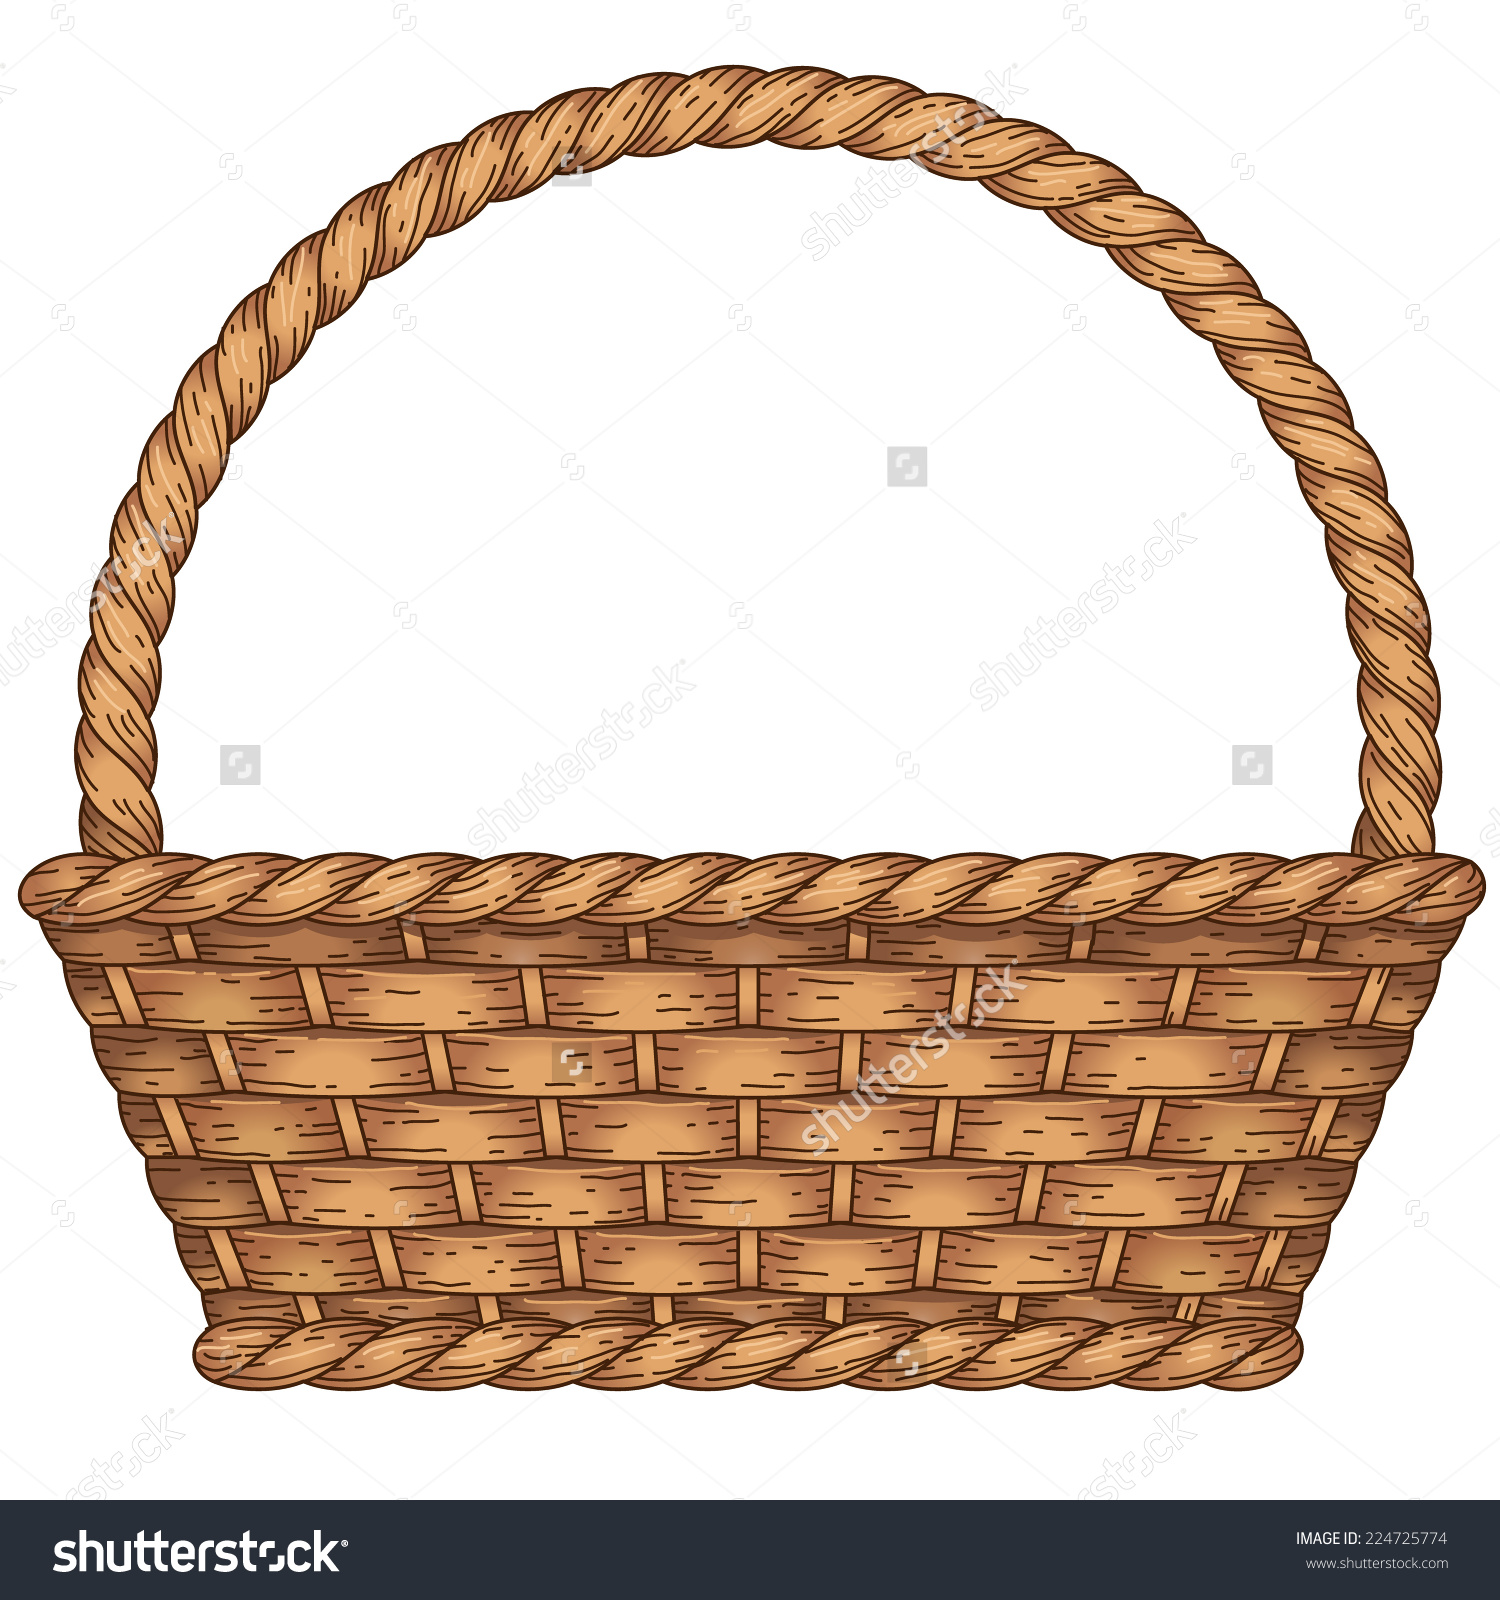 Cane basket clipart 20 free Cliparts | Download images on ...